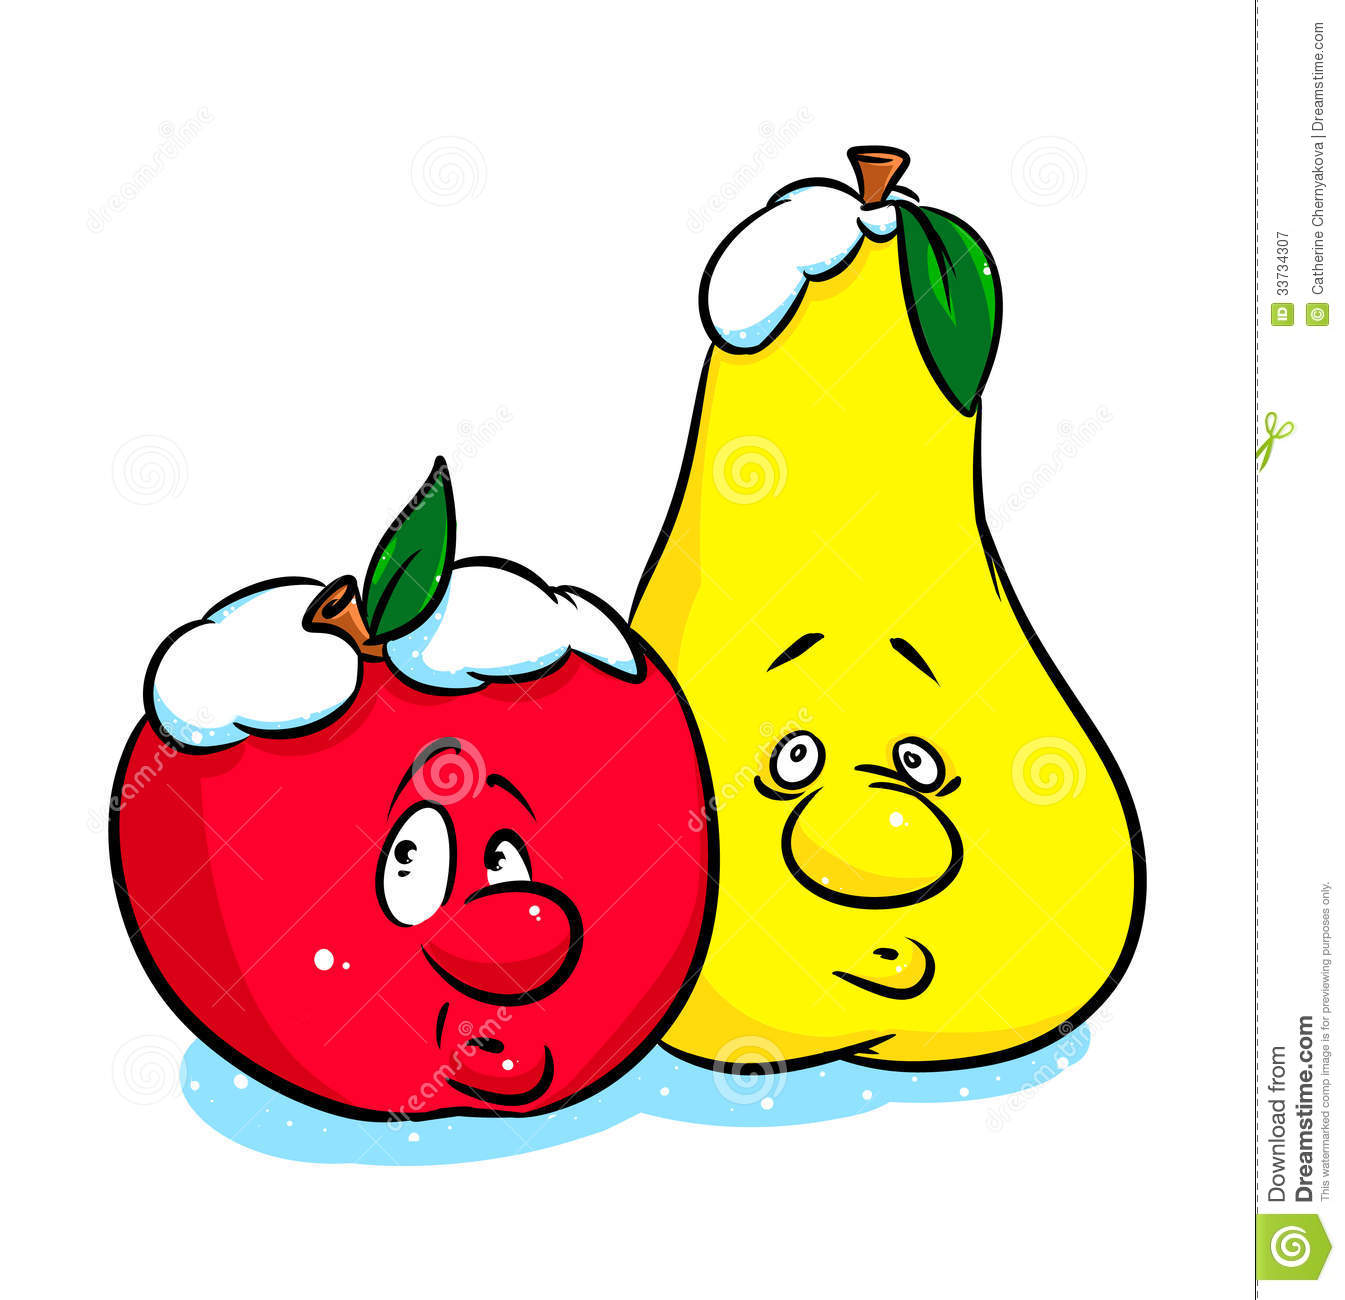 Apple and pear clipart.